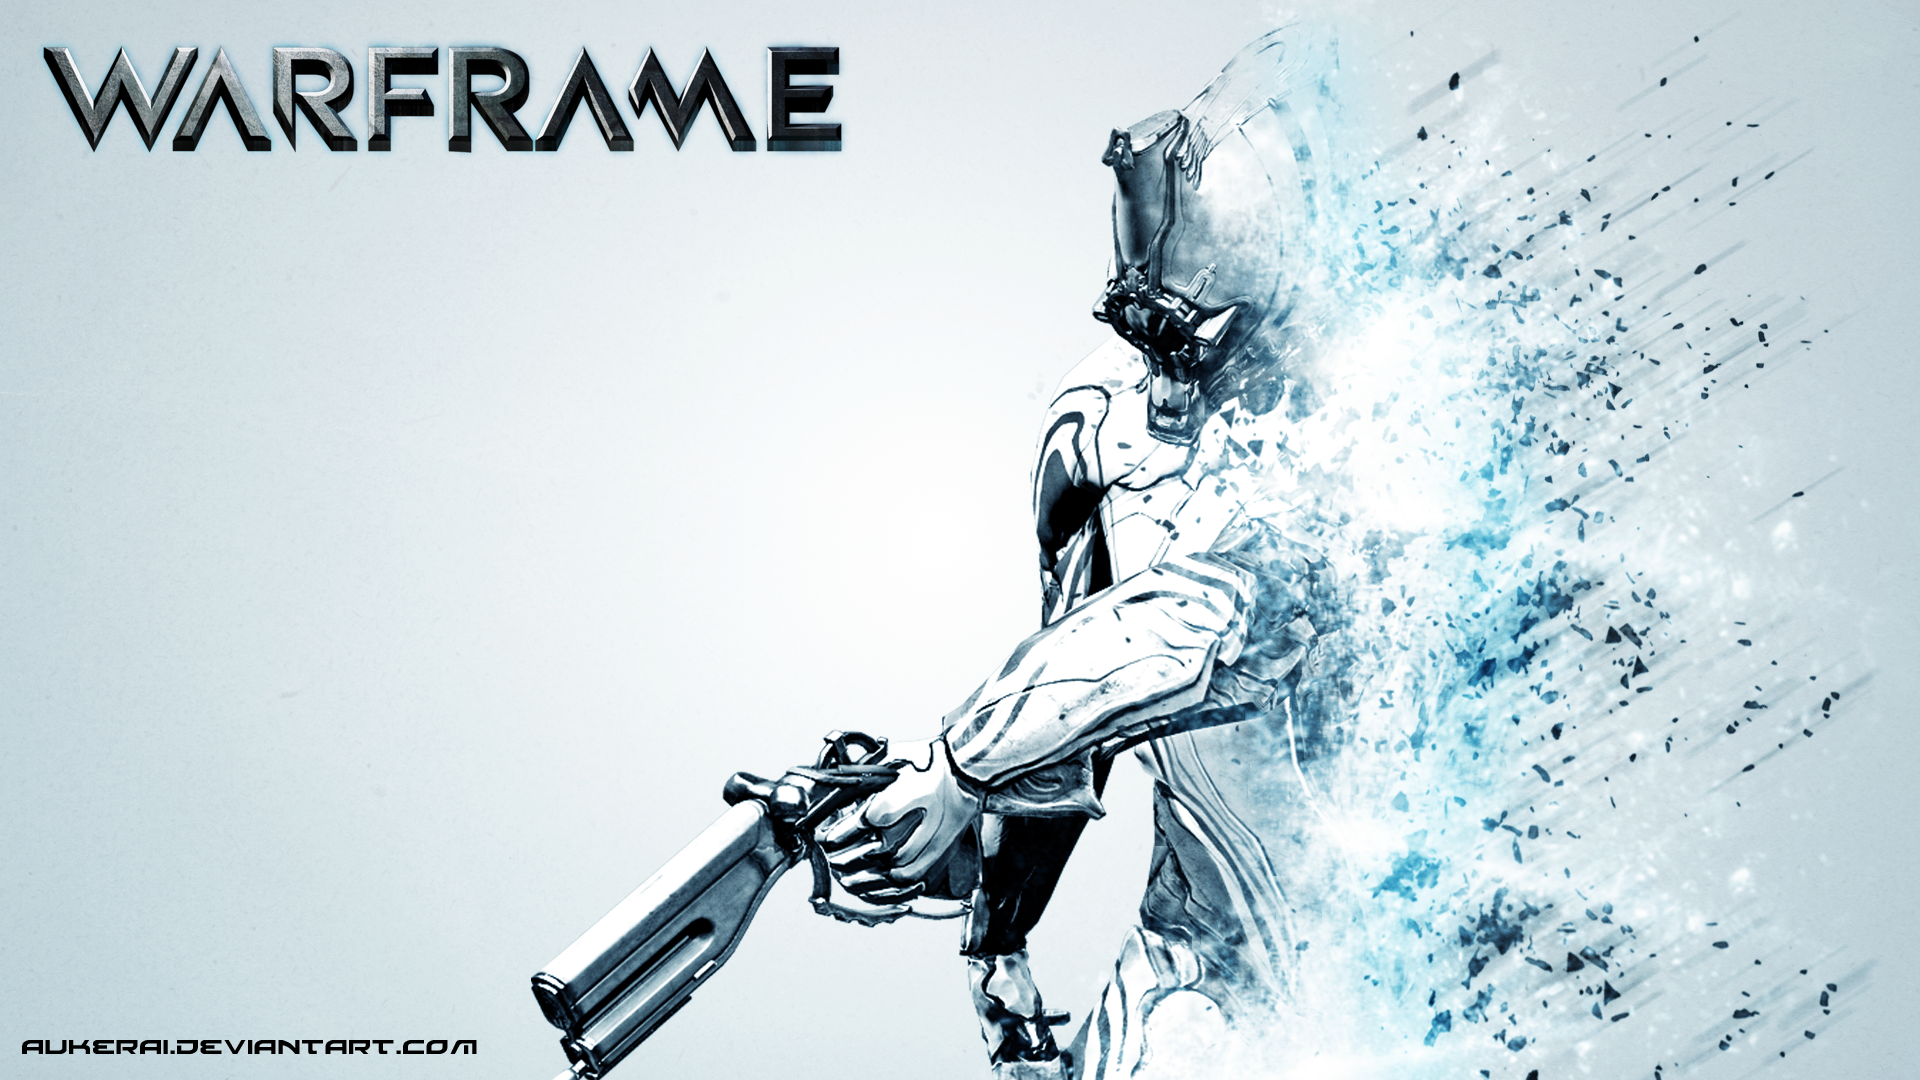 Warframe wallpapers high quality download free - Fan wallpaper download ...